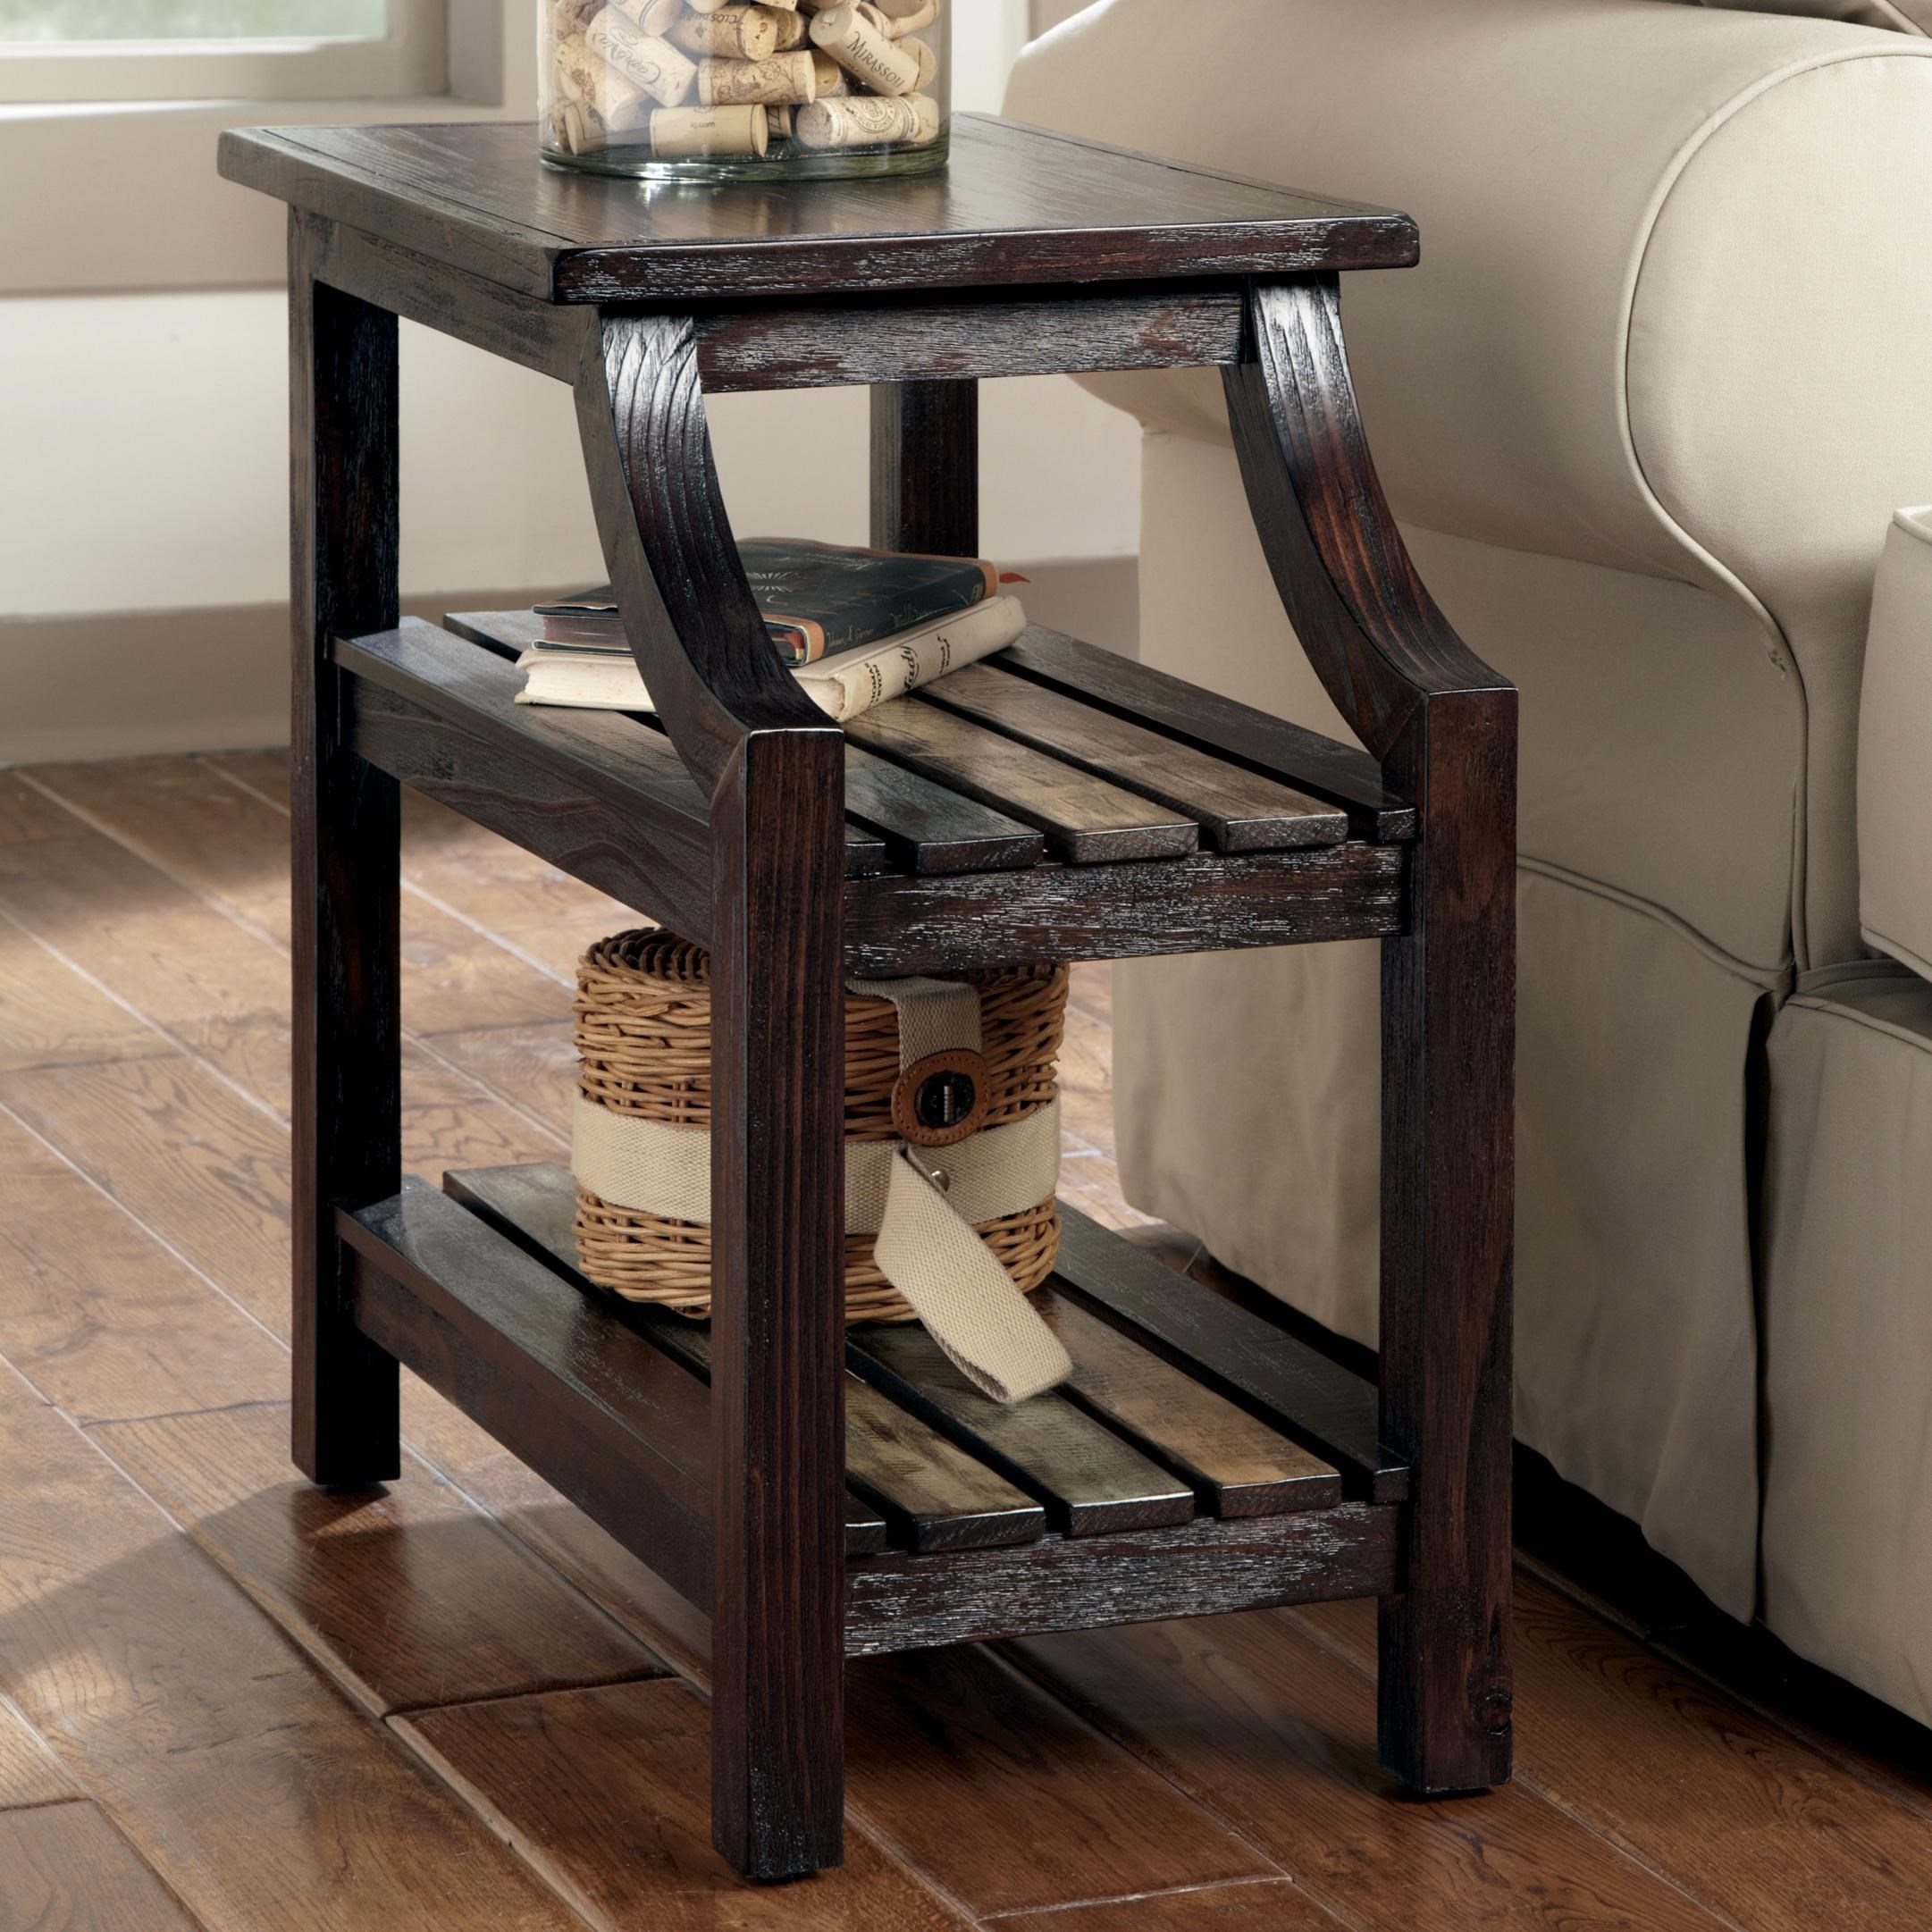 Gentil Signature Design By Ashley Mestler Chairside End Table With Colorful Plank  Shelves